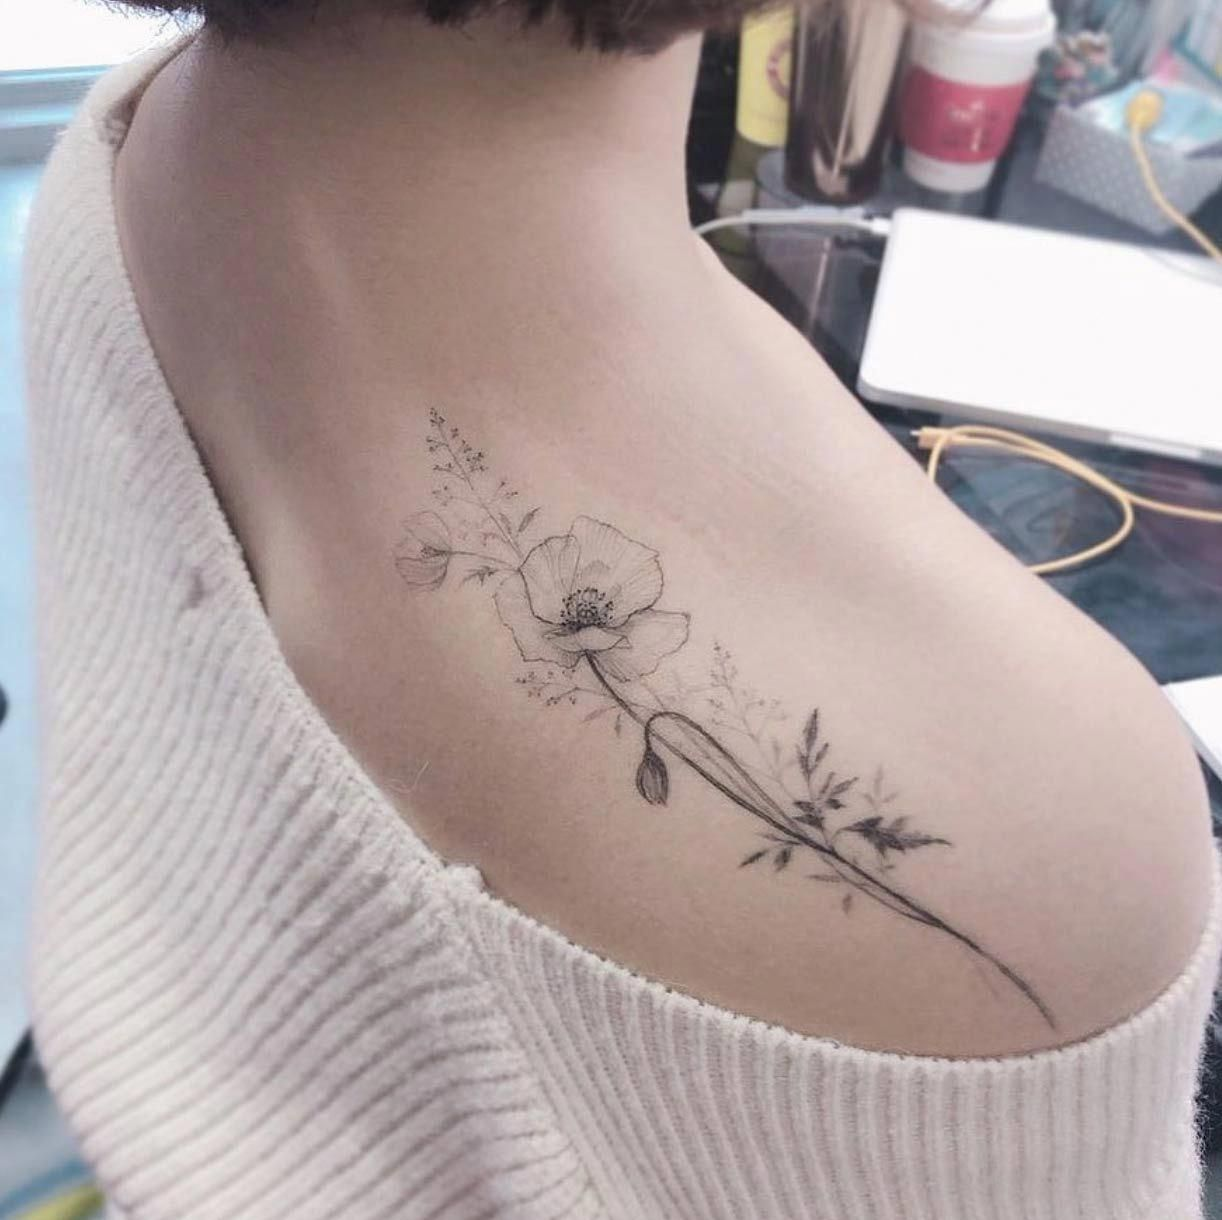 Excellent Tattoo Are Readily Available On Our Website Take A Look And You Wont Be Sorry Shoulder Tattoos For Women Tattoos For Women Back Of Shoulder Tattoo